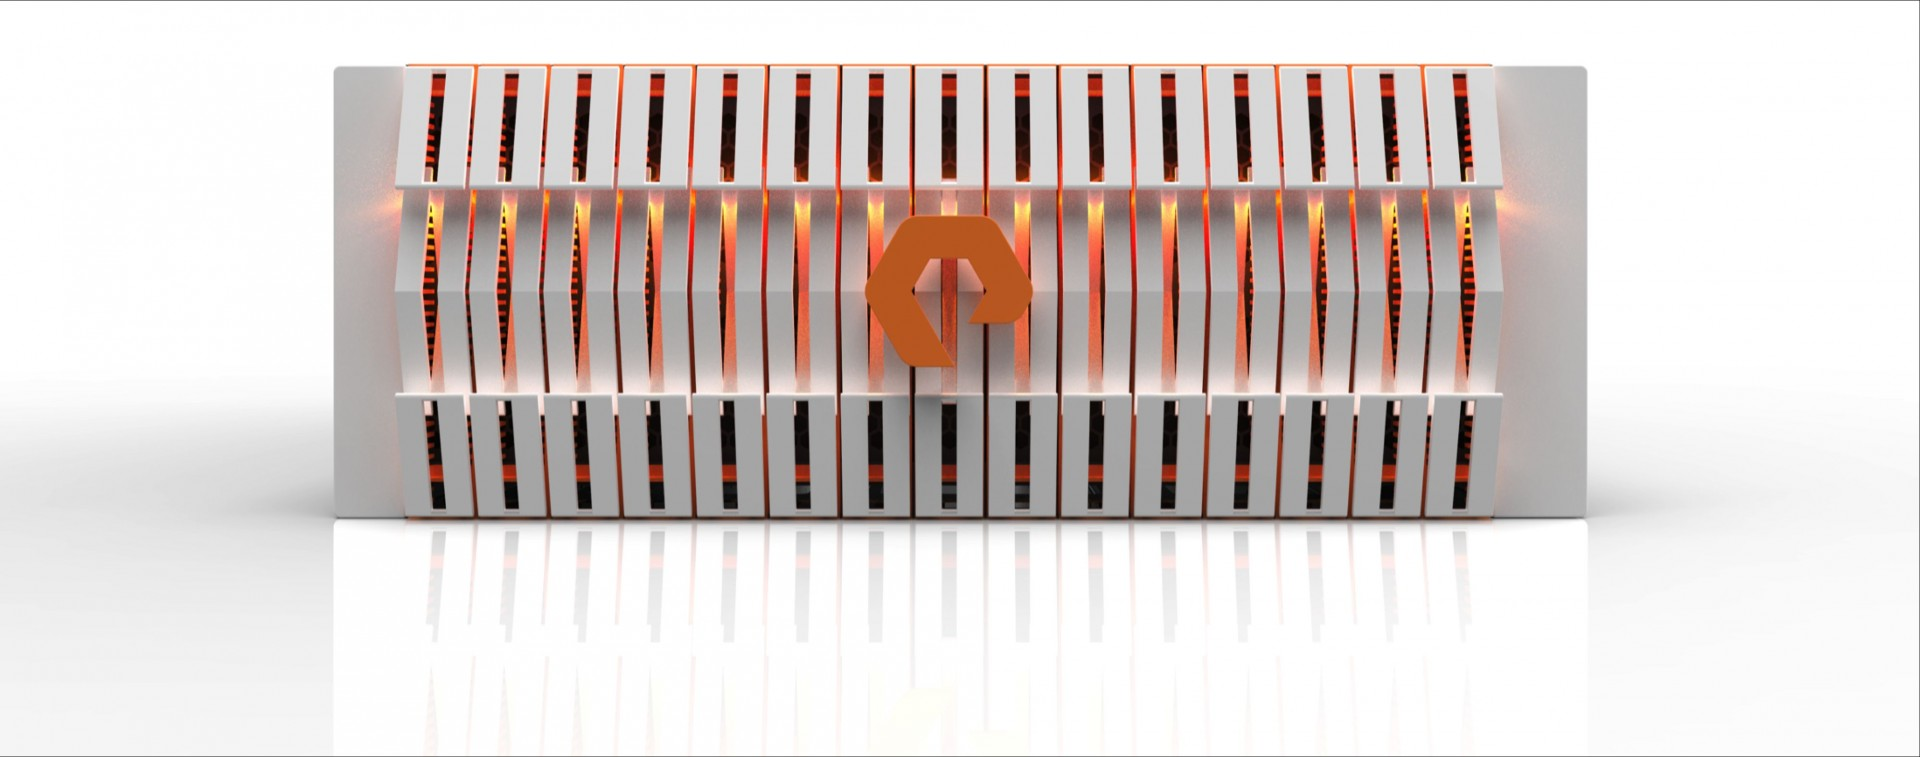 purestorage-flashblade.jpg